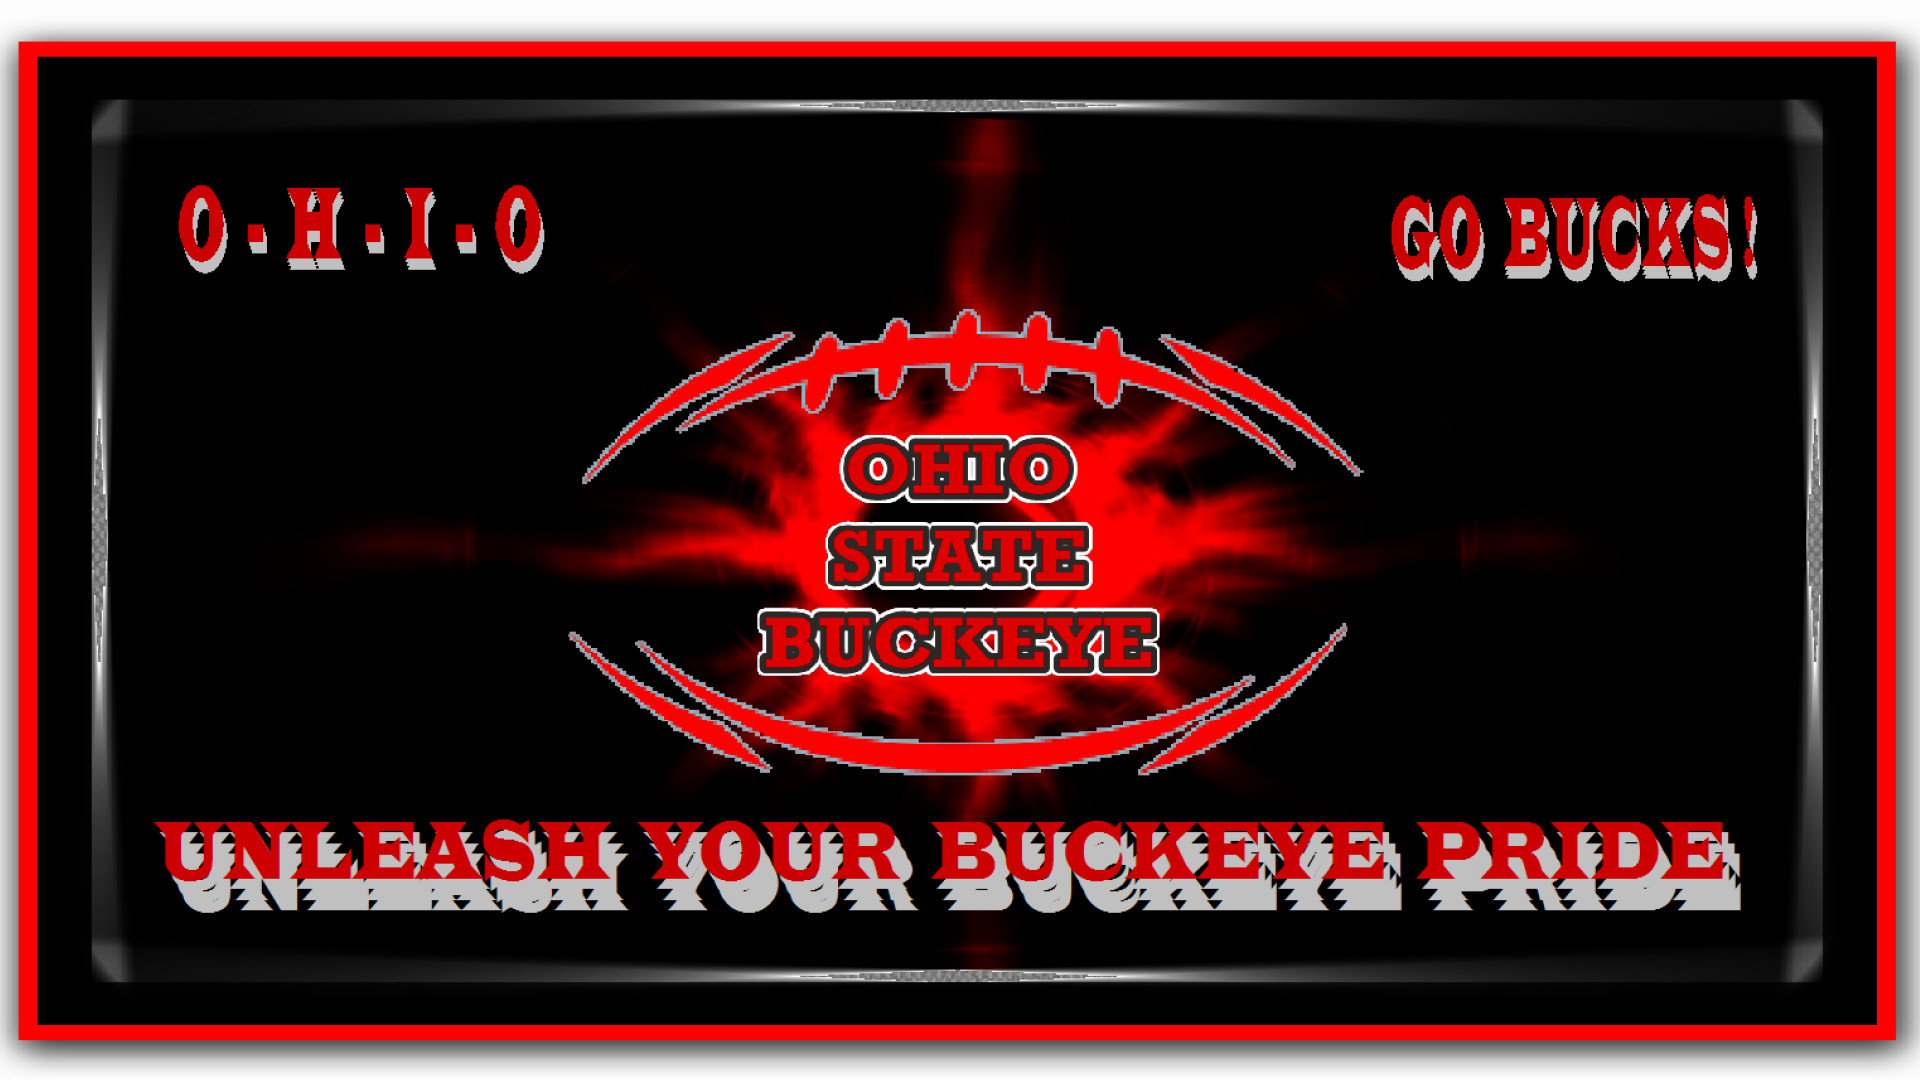 Ohio State Live Wallpaper HD Android Apps on Google Play